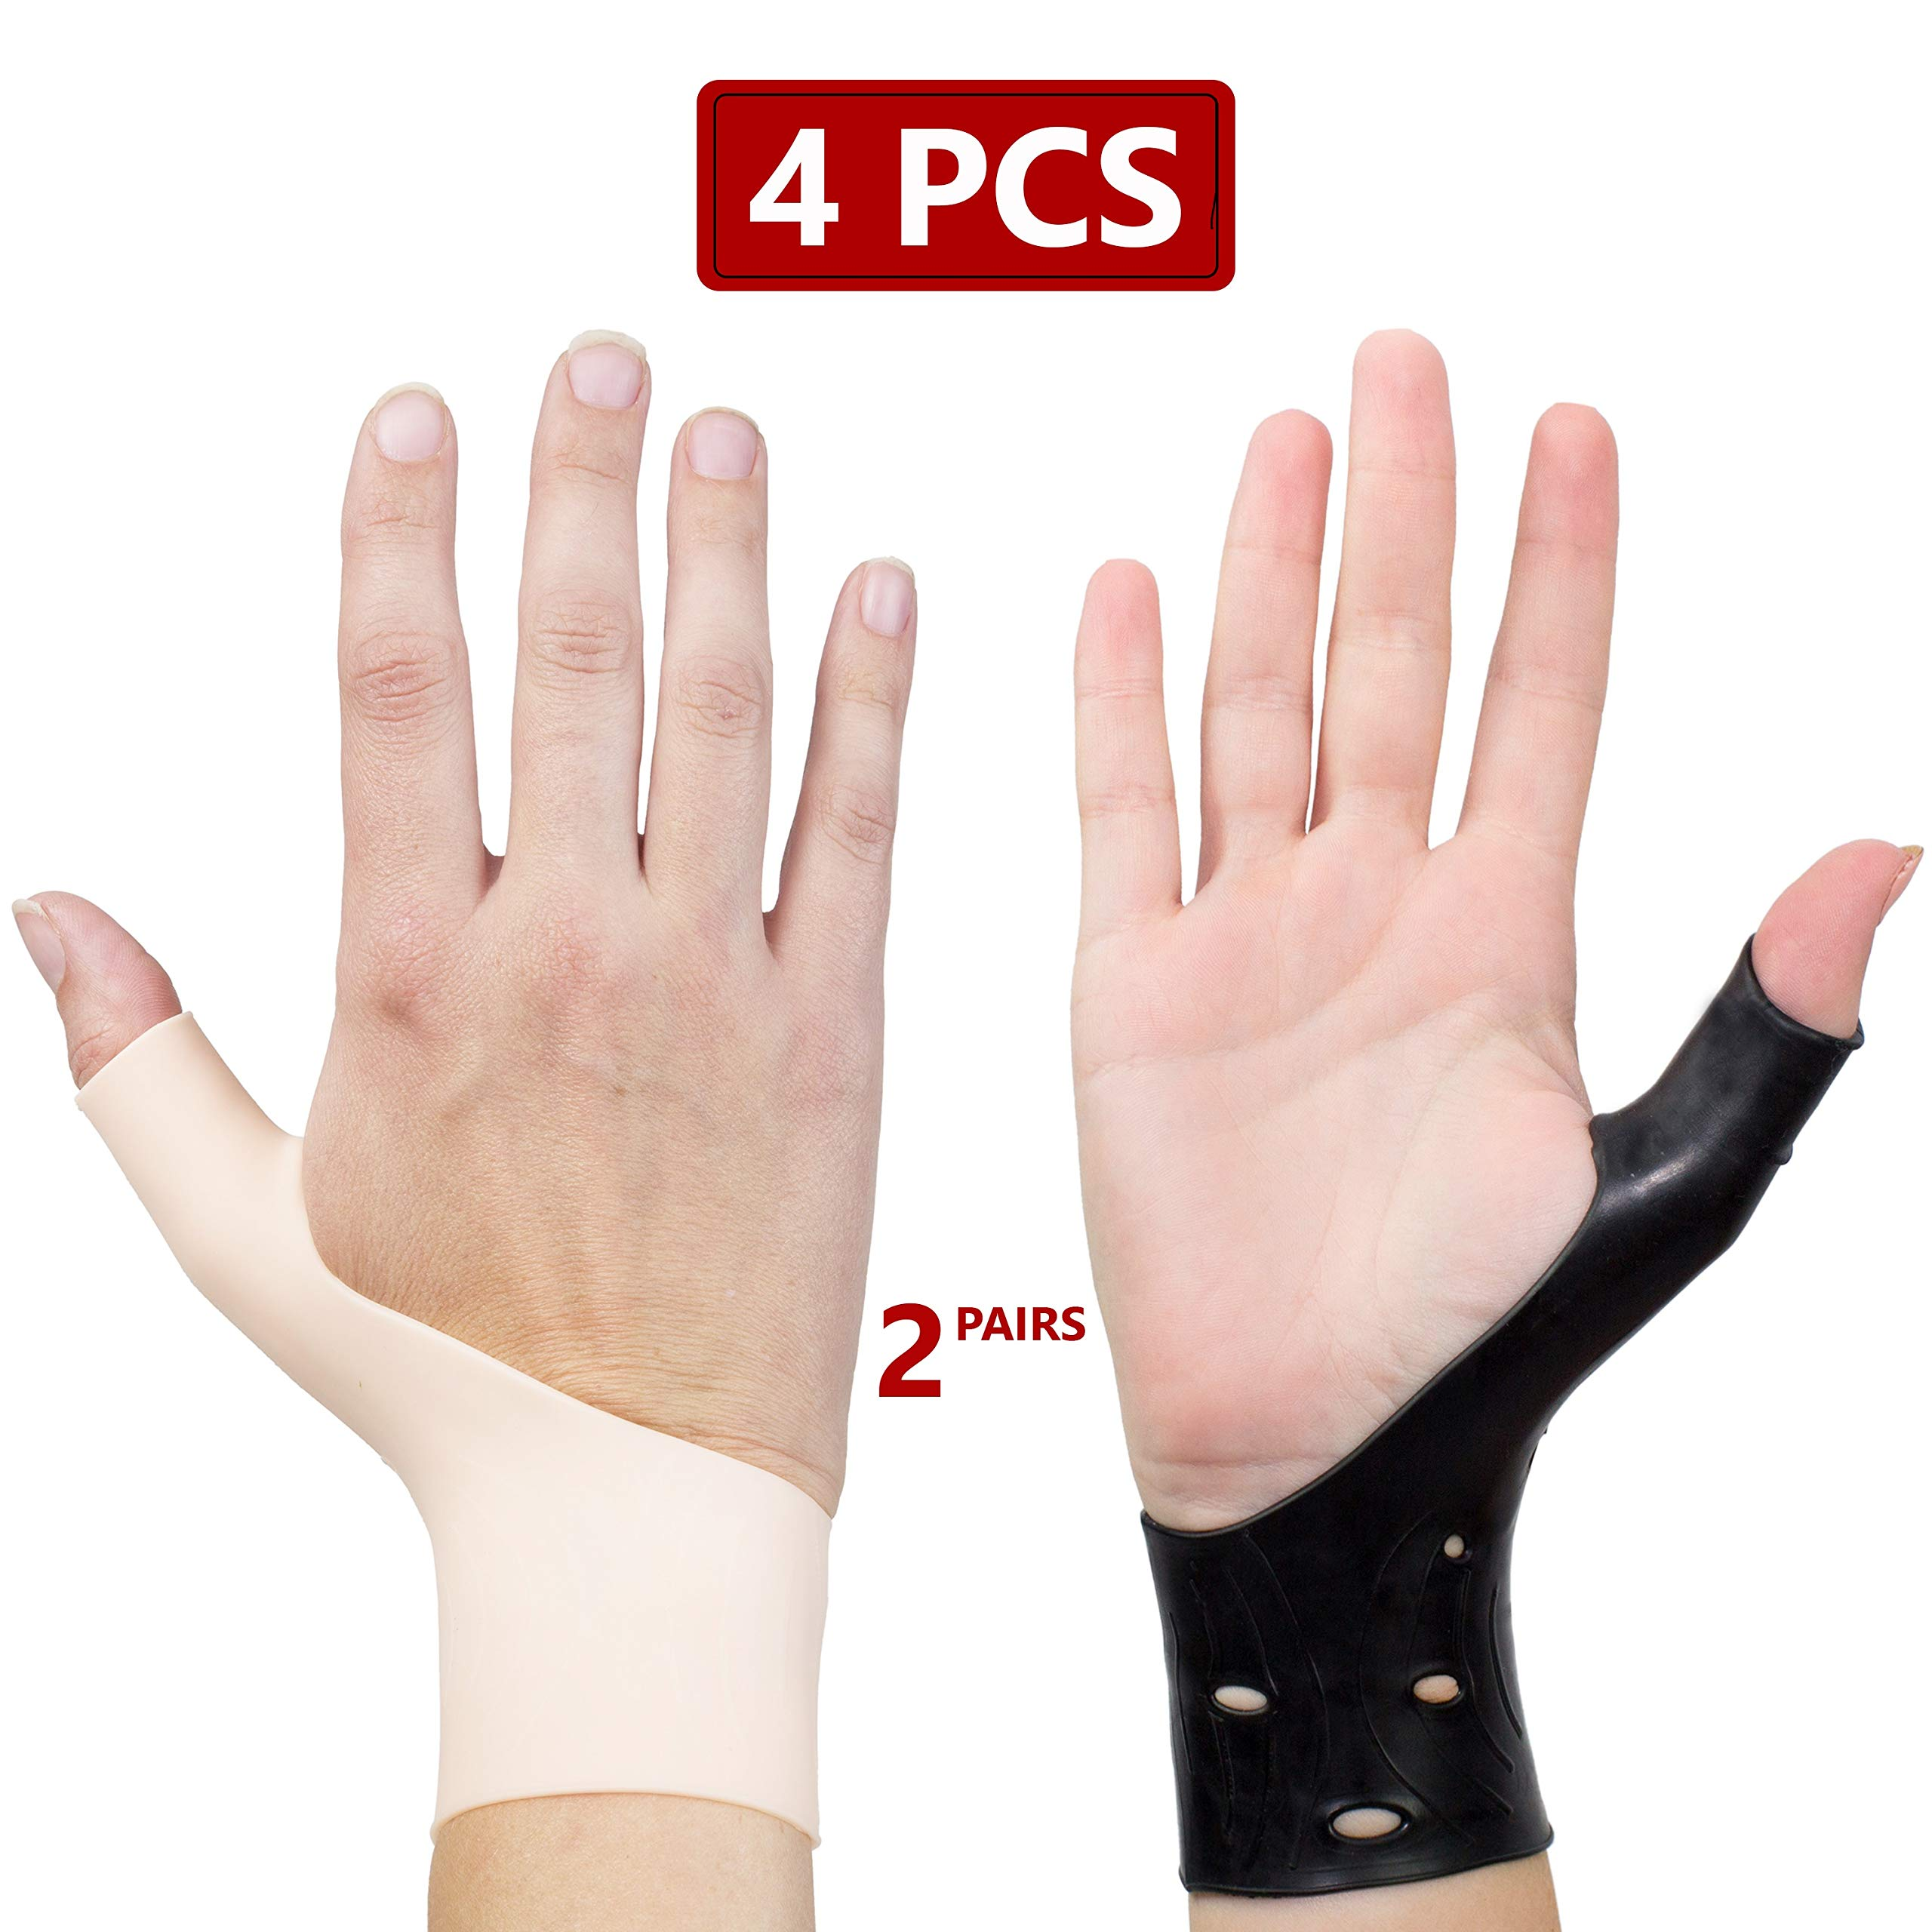 EXCELYFE Premium 4 Piece Black & Nude Color Gel Wrist & Thumb Support Braces For Right & Left Hand| Relieves Wrist & Thumb Pain Including Arthritis,Rheumatism,Carpal Tunnel |For Everyday Use or Sports by Excelyfe